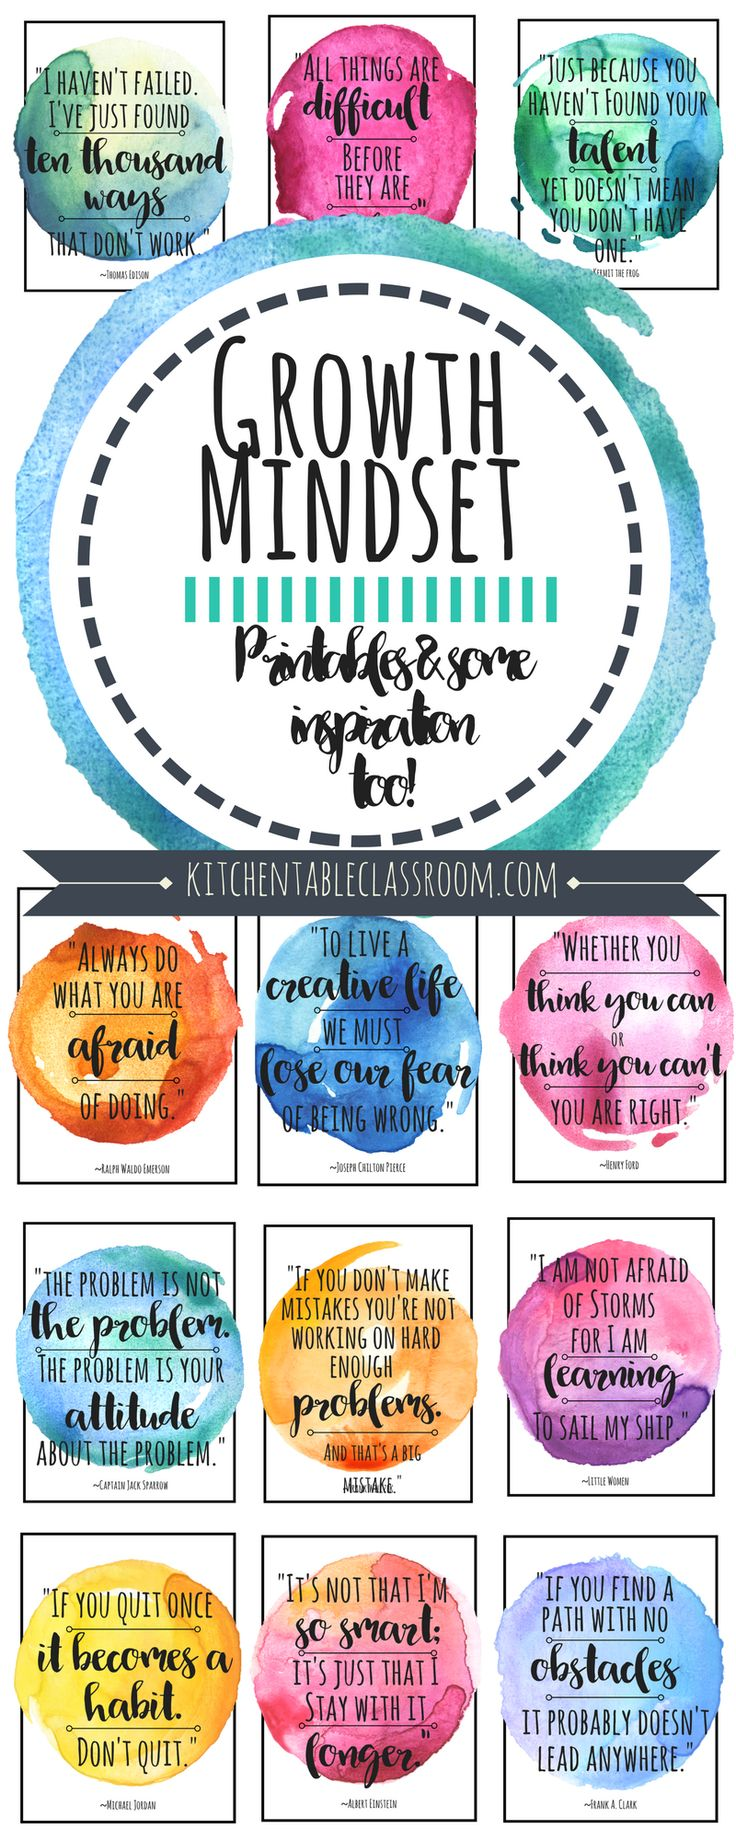 I love that what you know & what you can do can change at anytime! This is exciting news, right? These growth mindset quotes are good reminders of just that